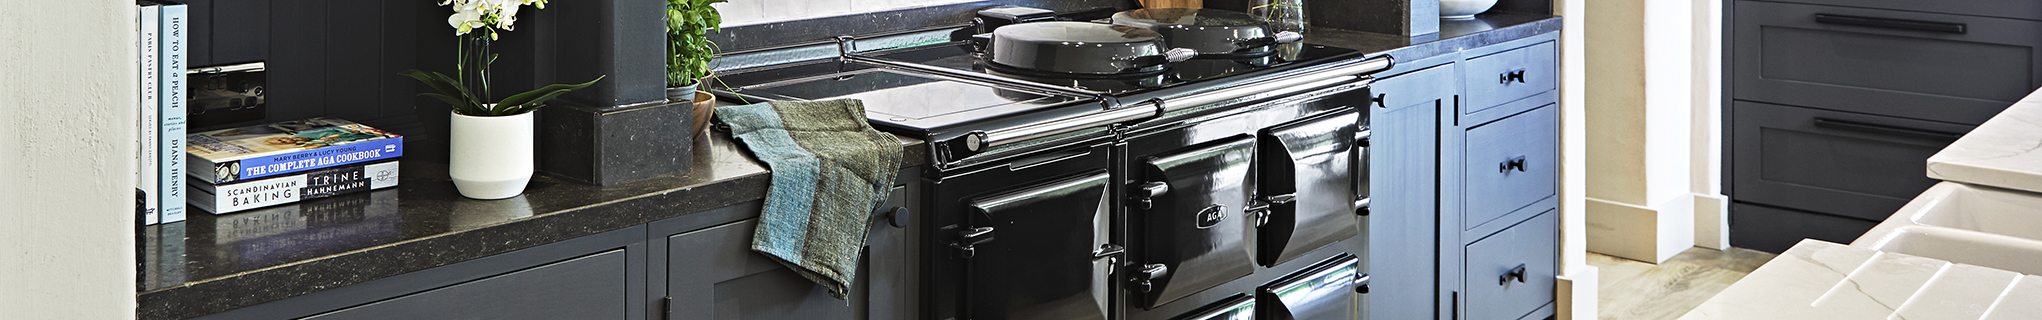 AGA R7 150 Model in Black